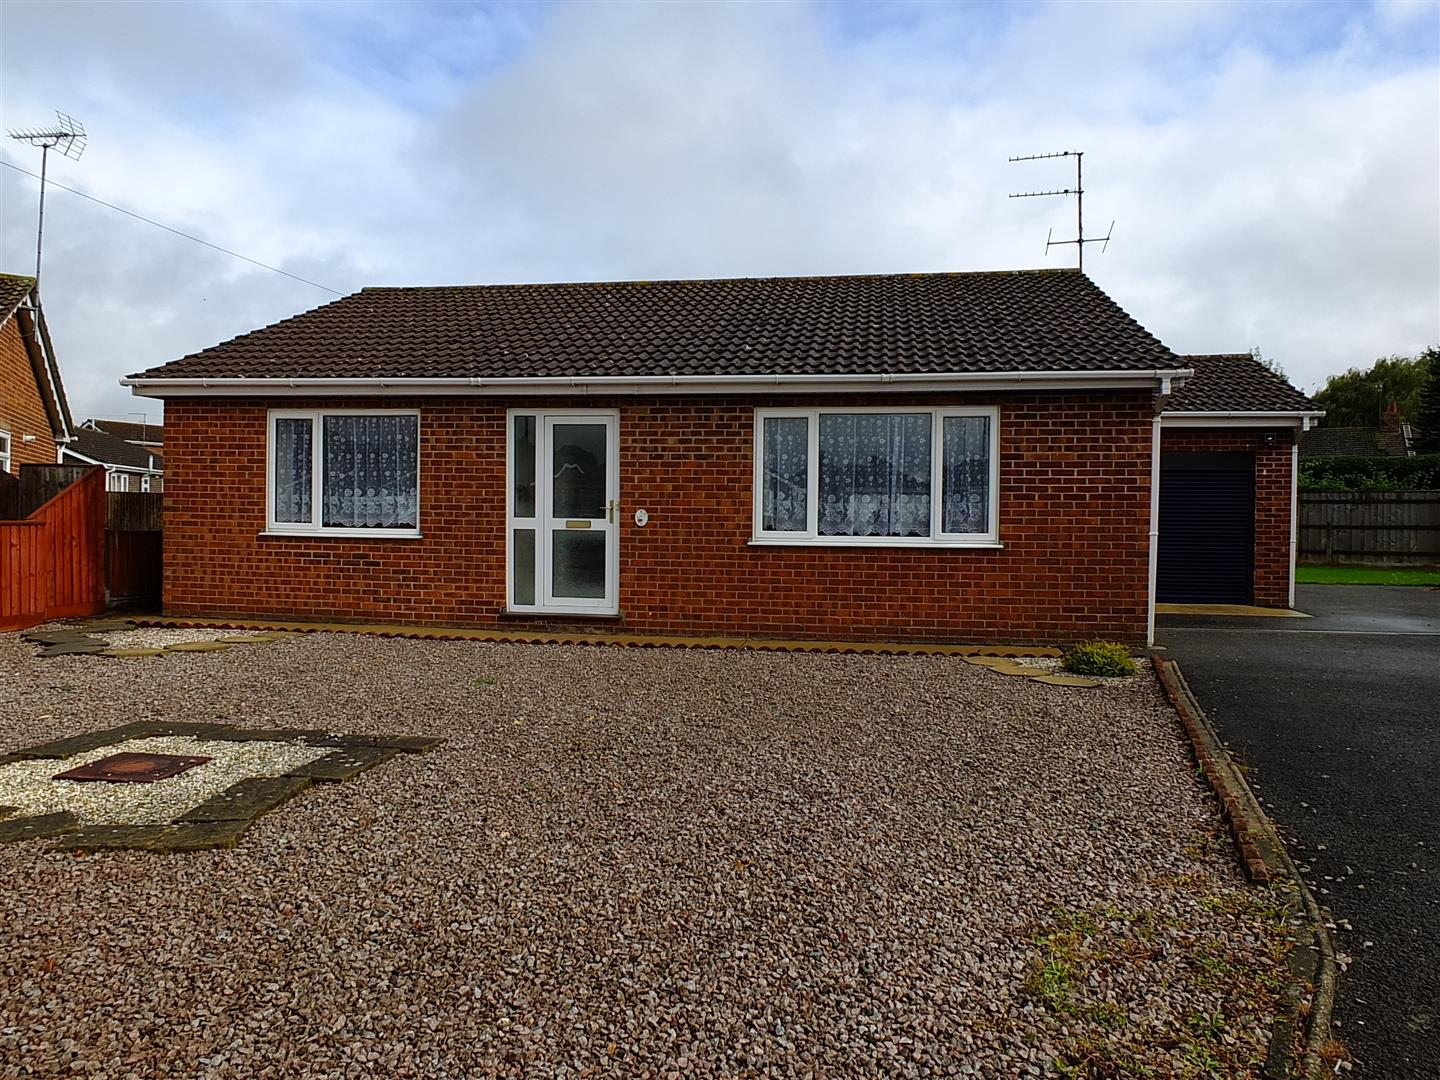 3 bed detached bungalow to rent in Long Sutton Spalding, PE12 9LY  - Property Image 1